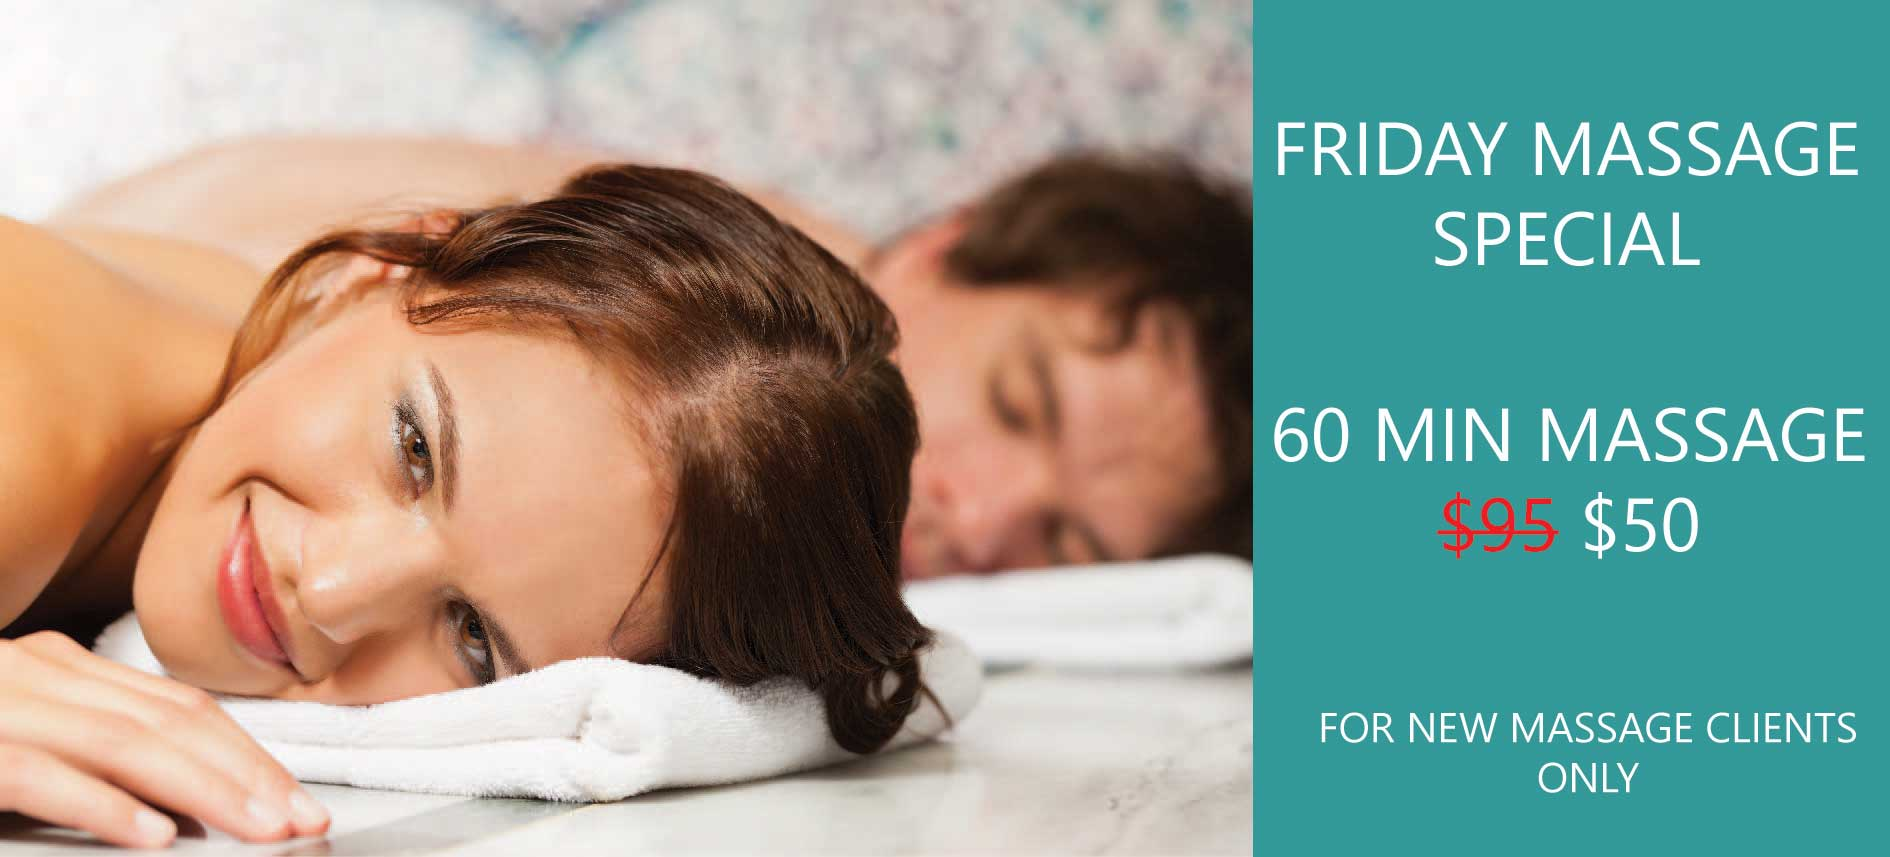 $50 FRIDAY MASSAGE SPECIAL